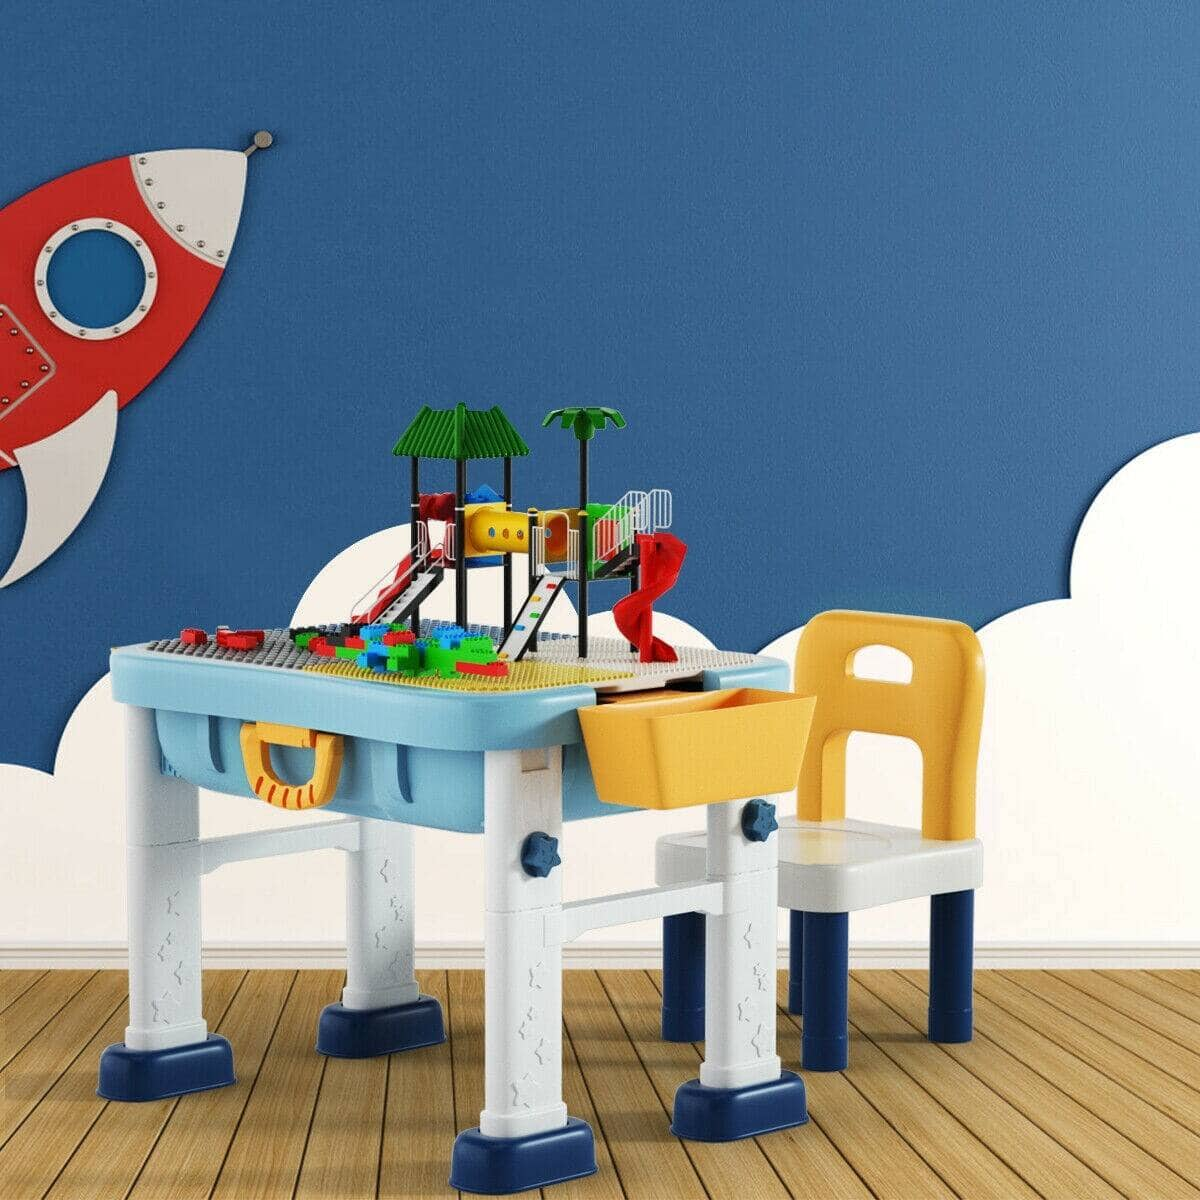 6 in 1 Kids Activity Table Set with Chair $53.95 + Free Shipping